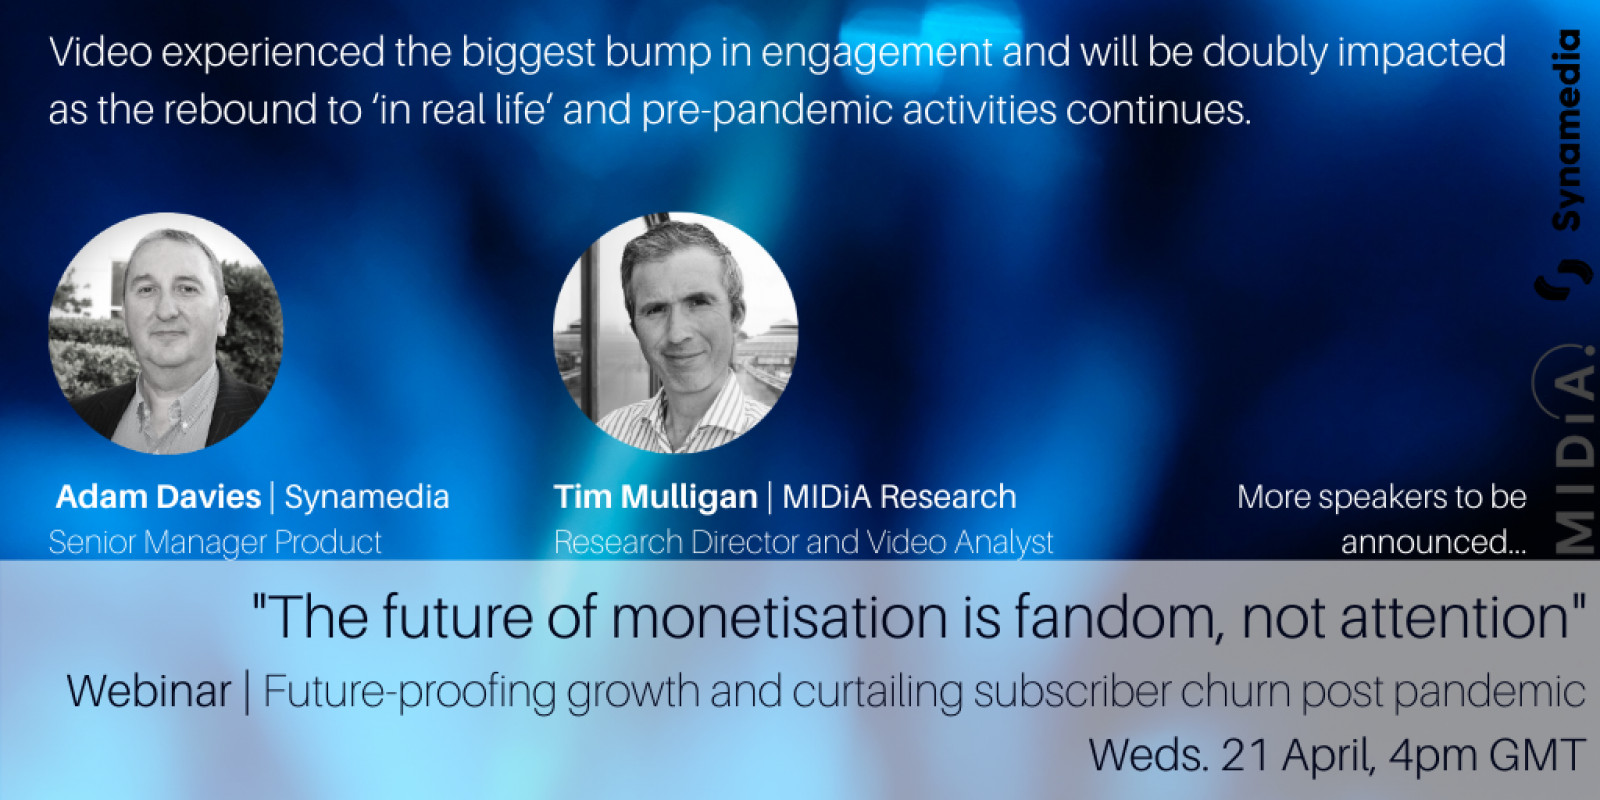 Cover image for Webinar April 21-22: the future is monetising fandom, not attention